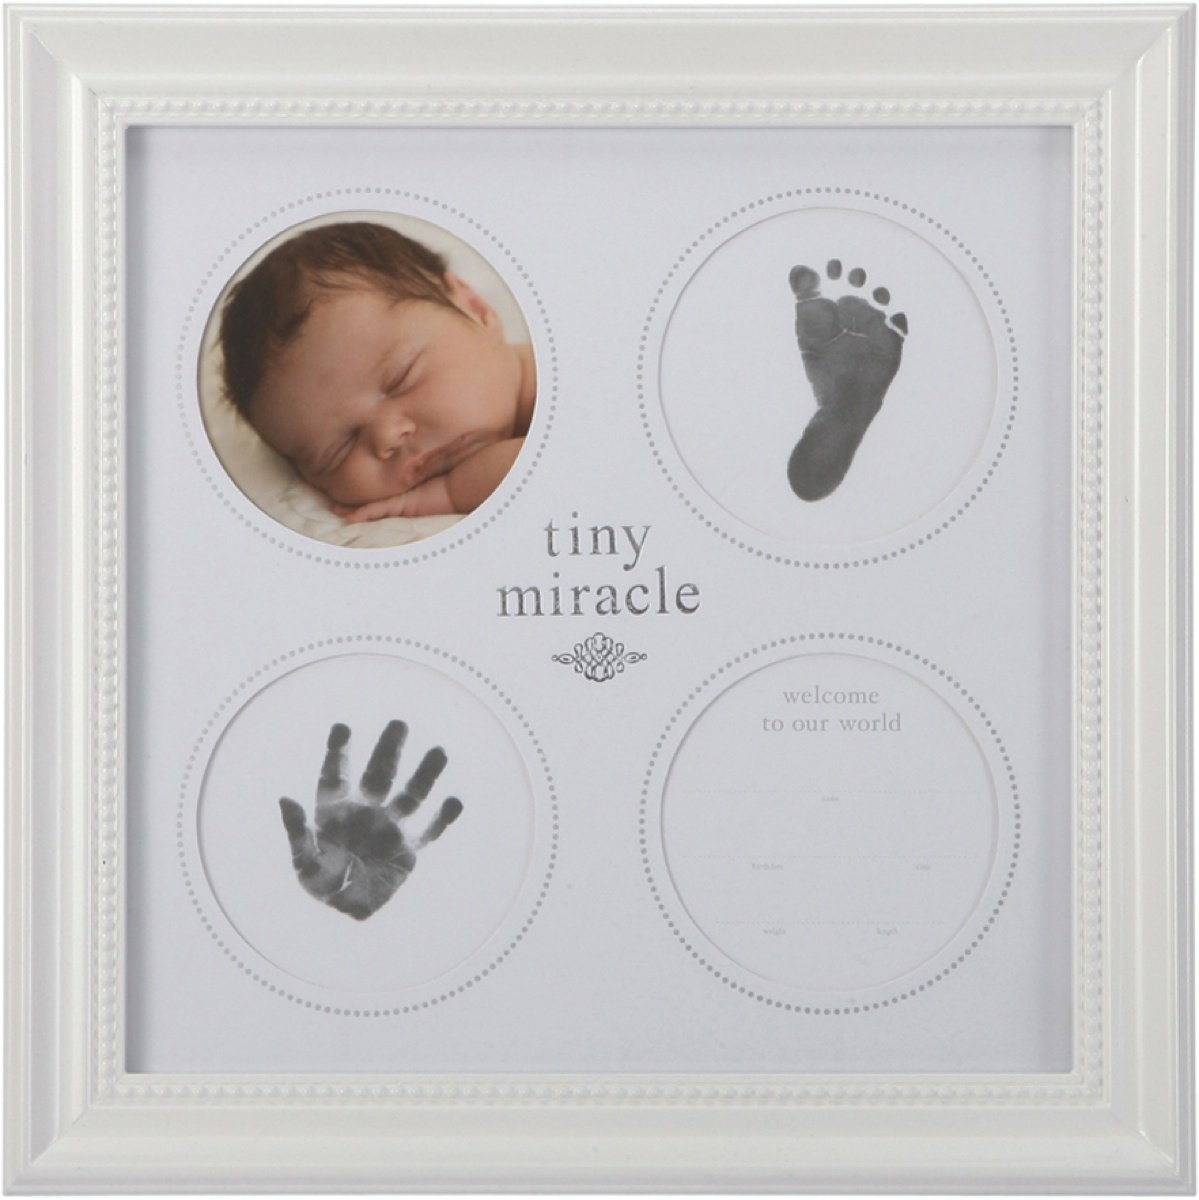 C. R. Gibson Keepsake Frame, Includes Non Toxic Black Ink Pad for First Prints, Measures 14 x 14 - Tiny Miracle Cr Gibson C.R. Gibson BHP13-10280 Other Gift Items - General